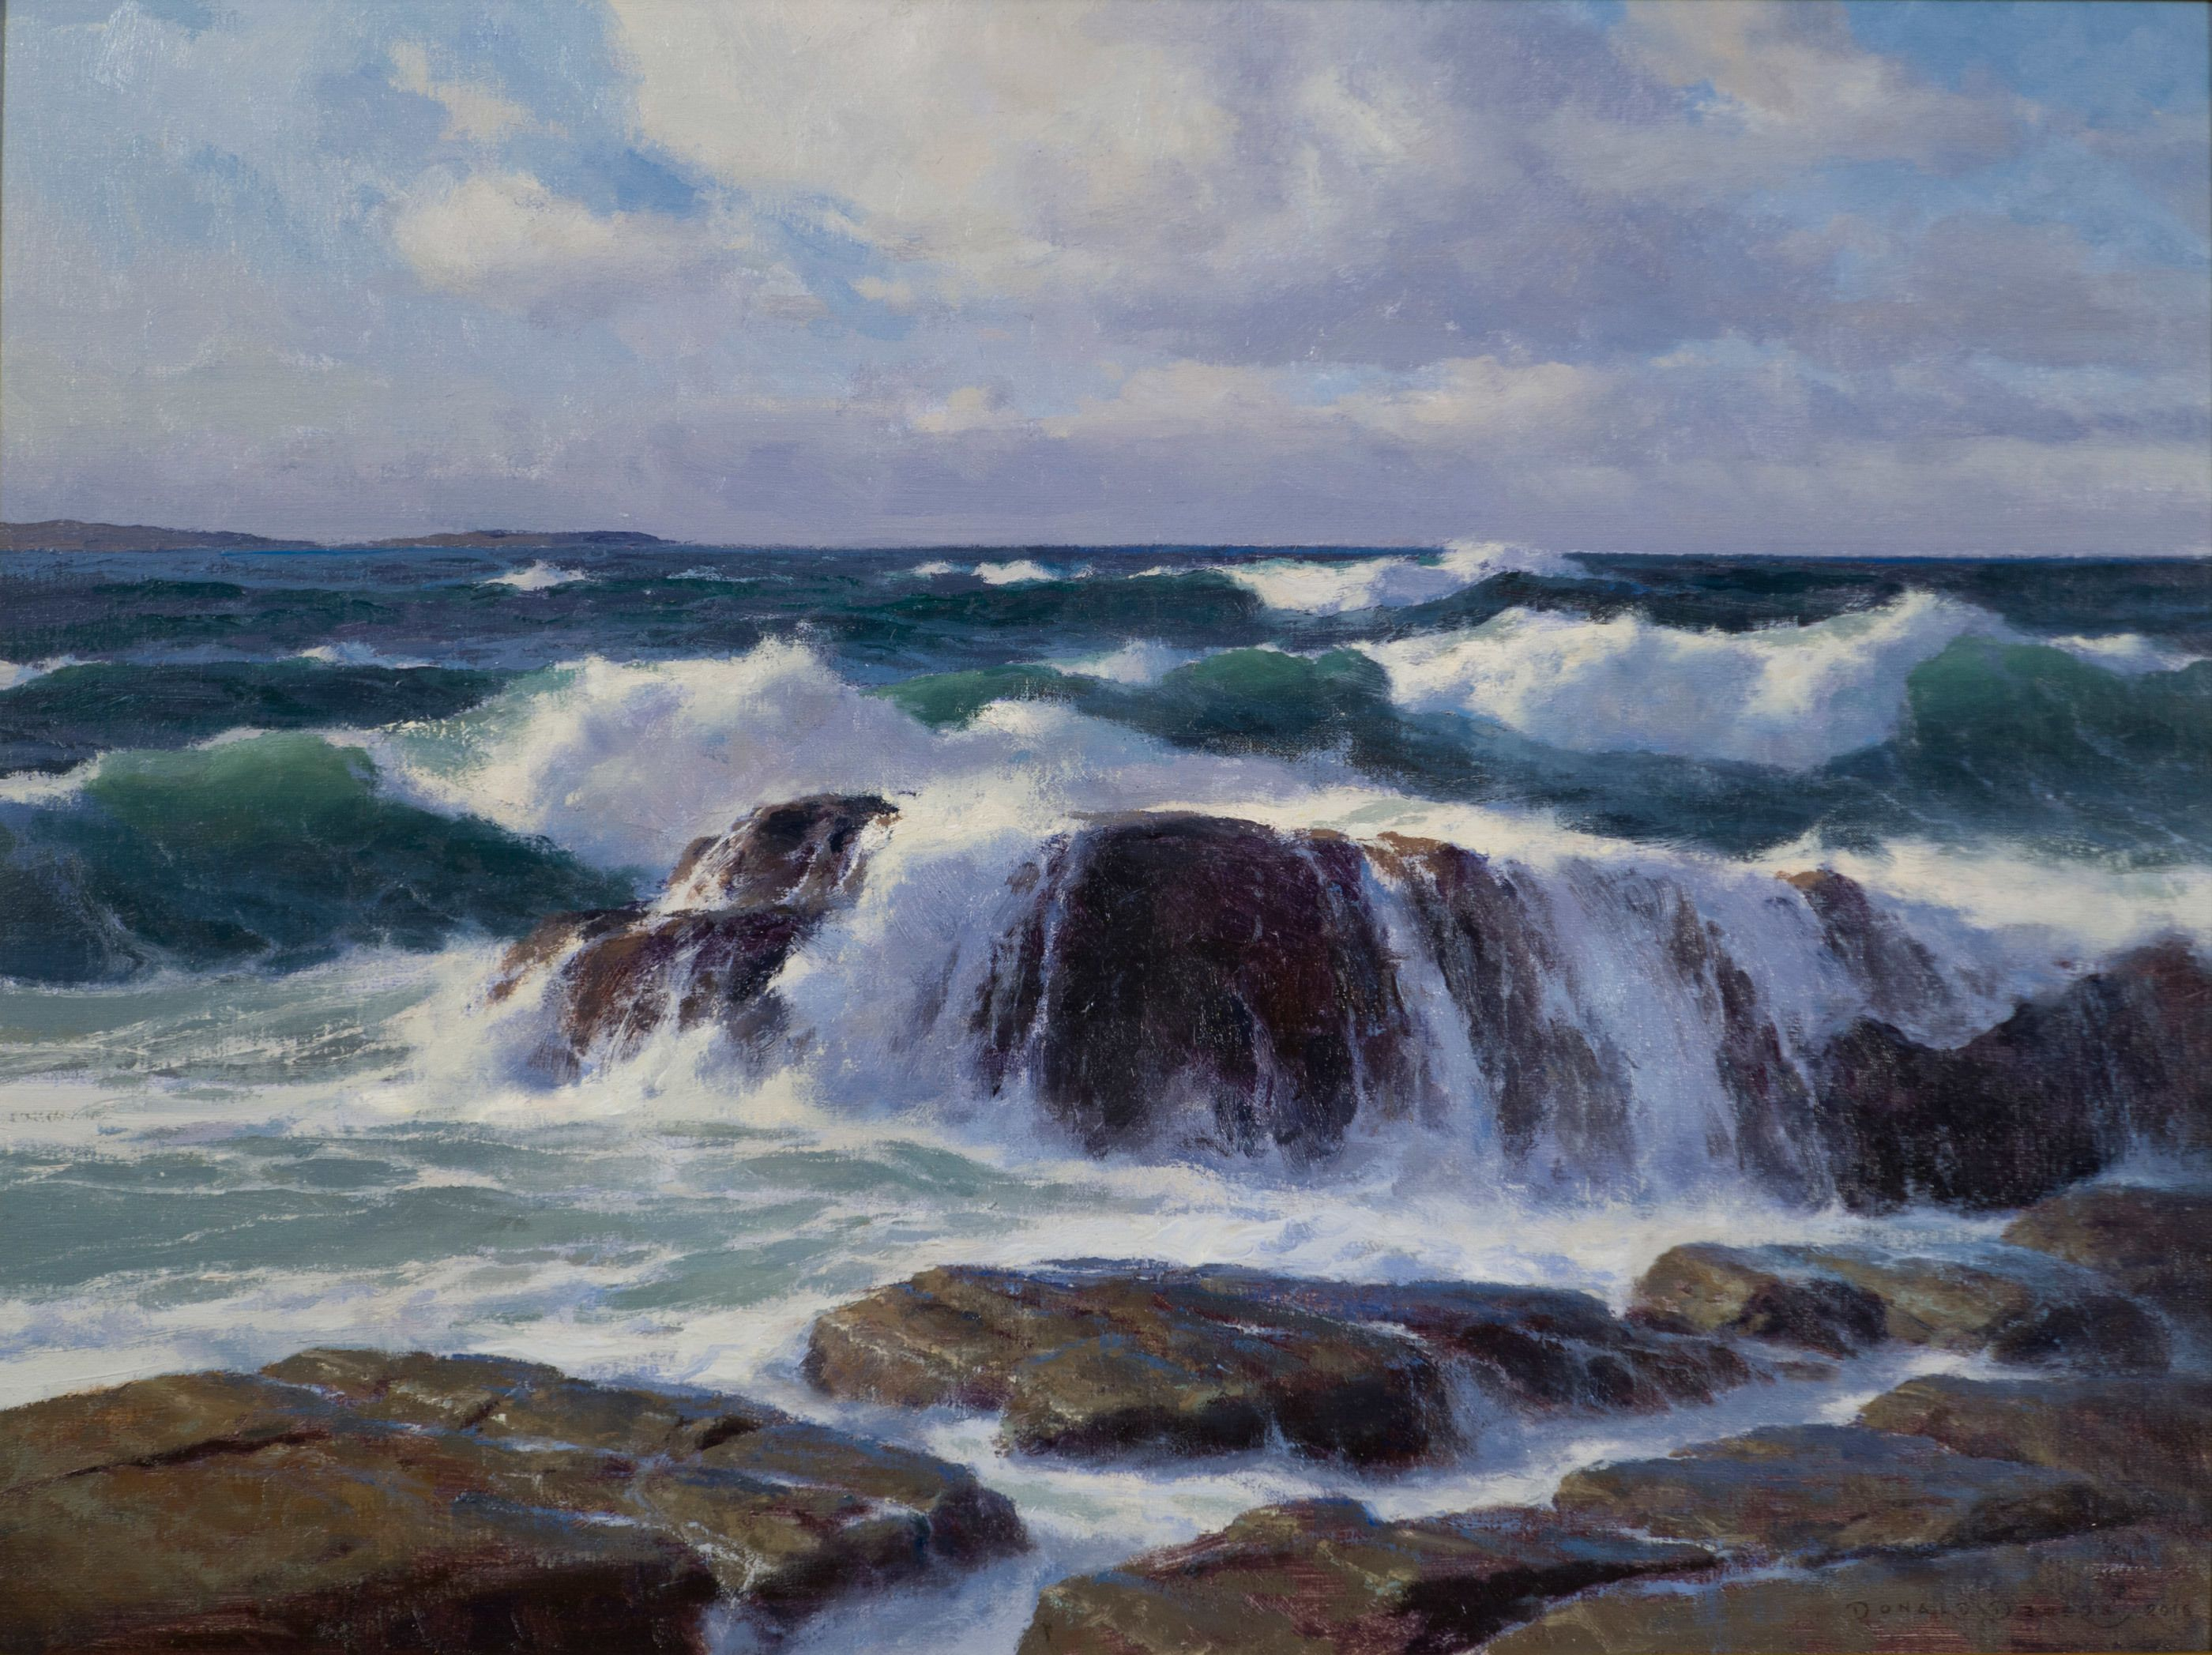 Onrush East Boothbay Maine By Donald Demers Seascape Artwork Seascape Paintings Ocean Painting